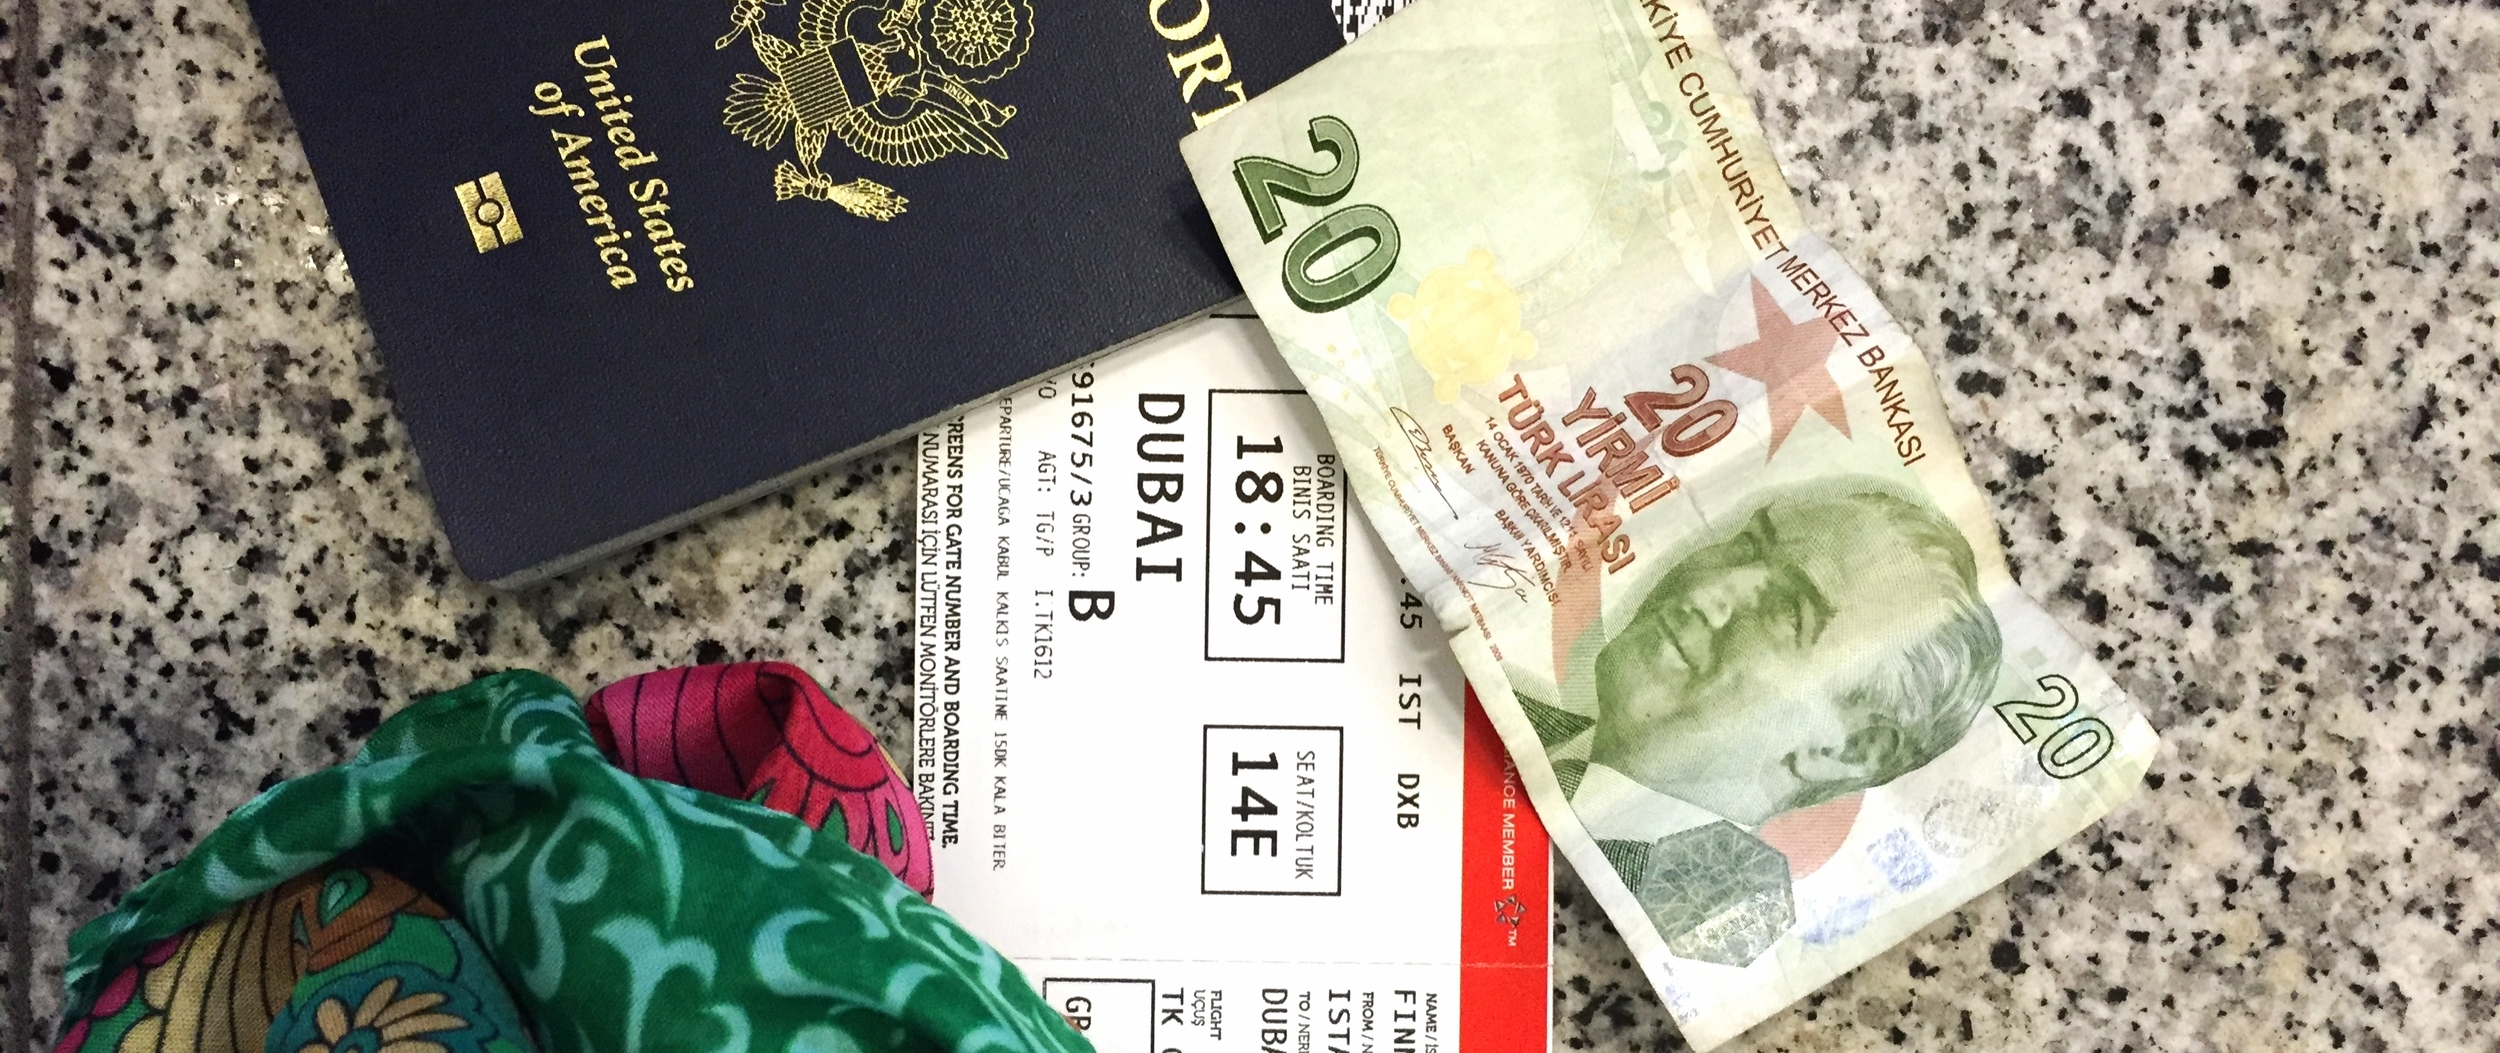 Passport, money and a ticket- Everything you need to travel.  (Really tough to use Turkeybucks in Dubai though...)